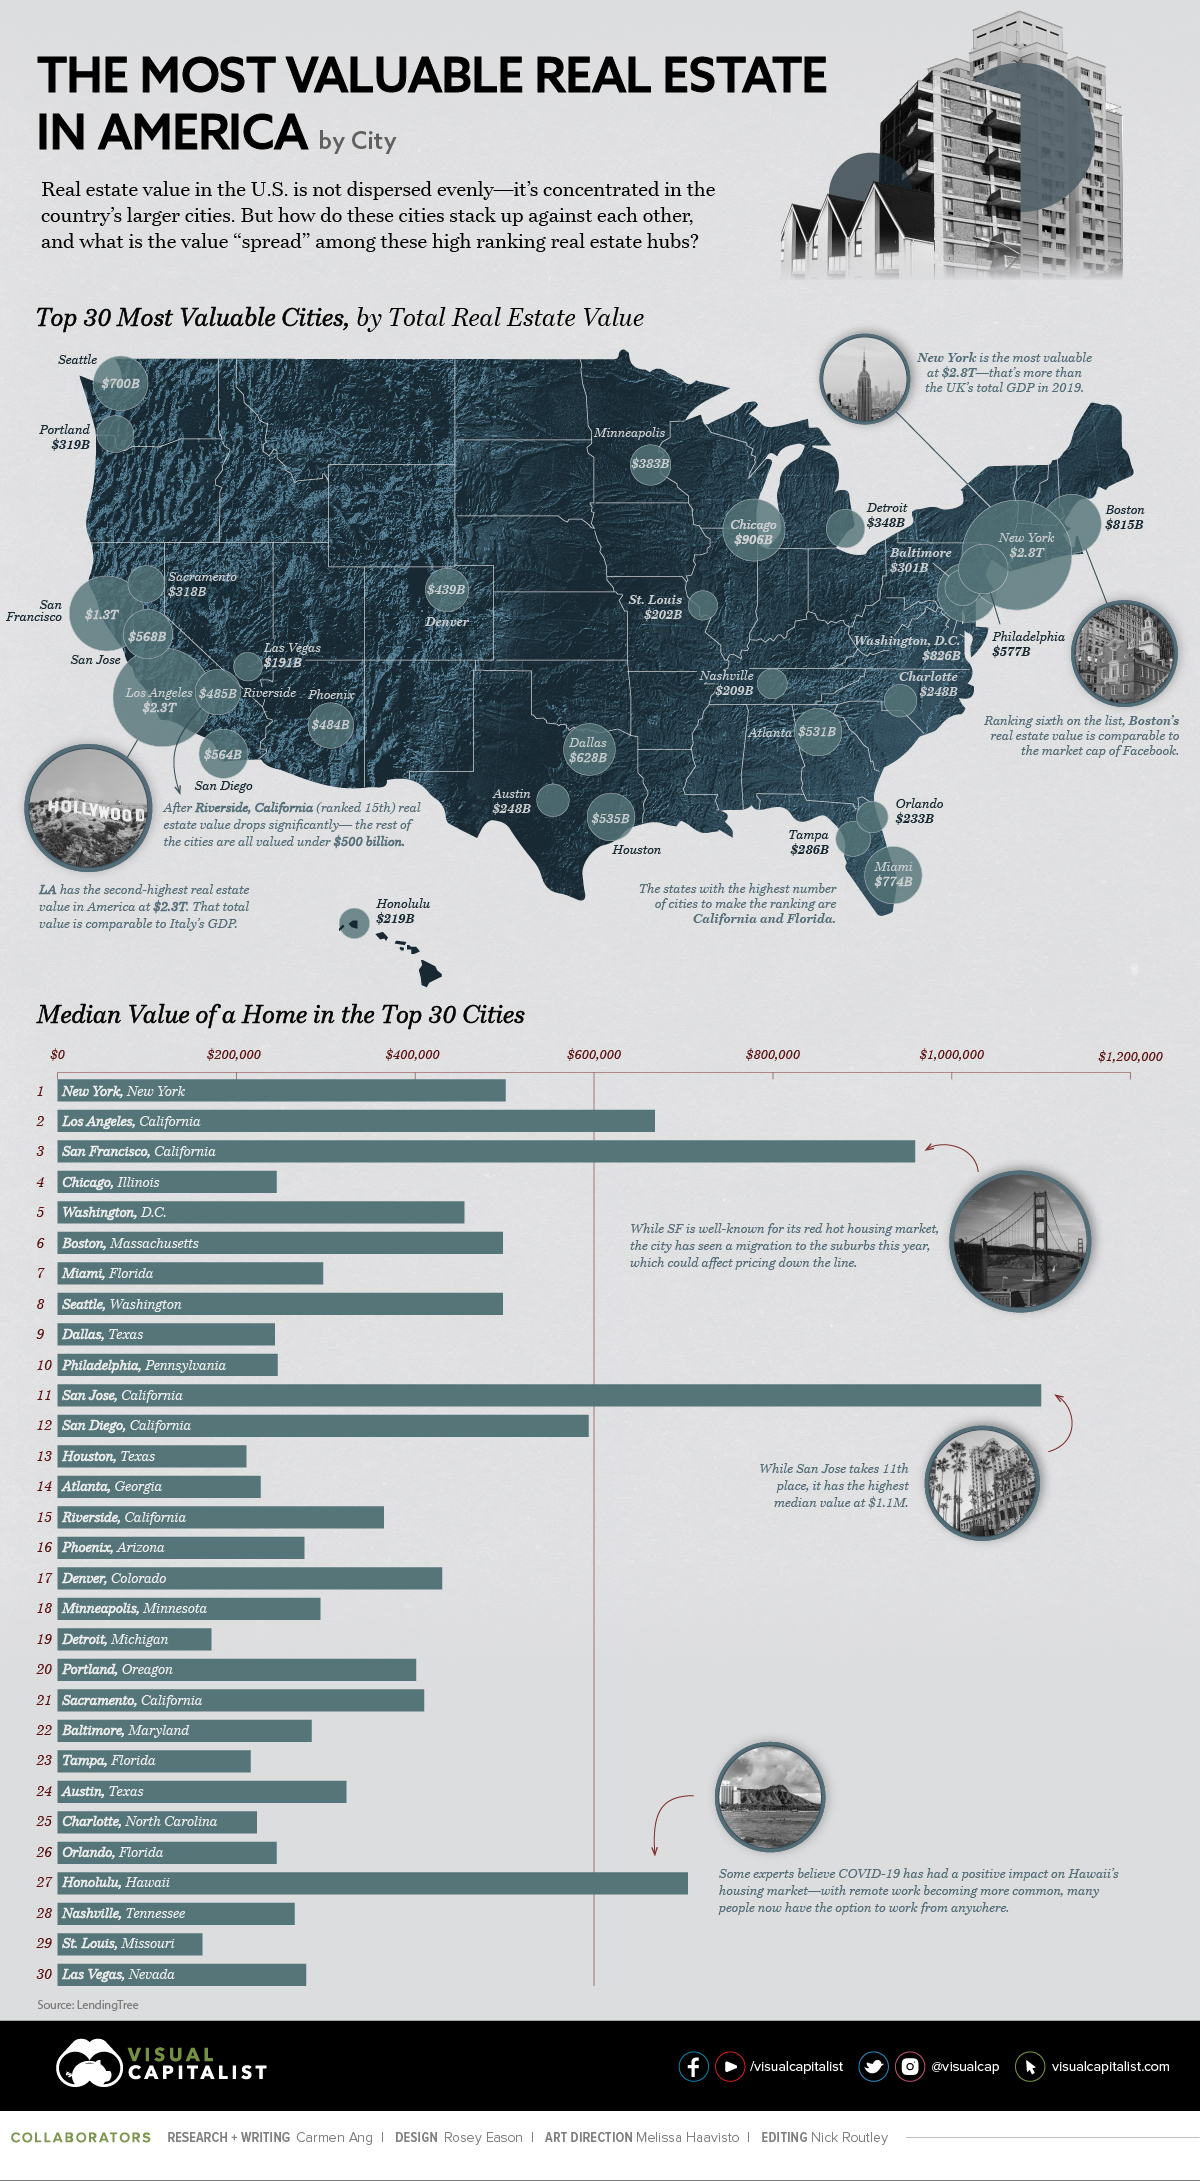 Top 30 Most Valuable Real Estate Cities in America